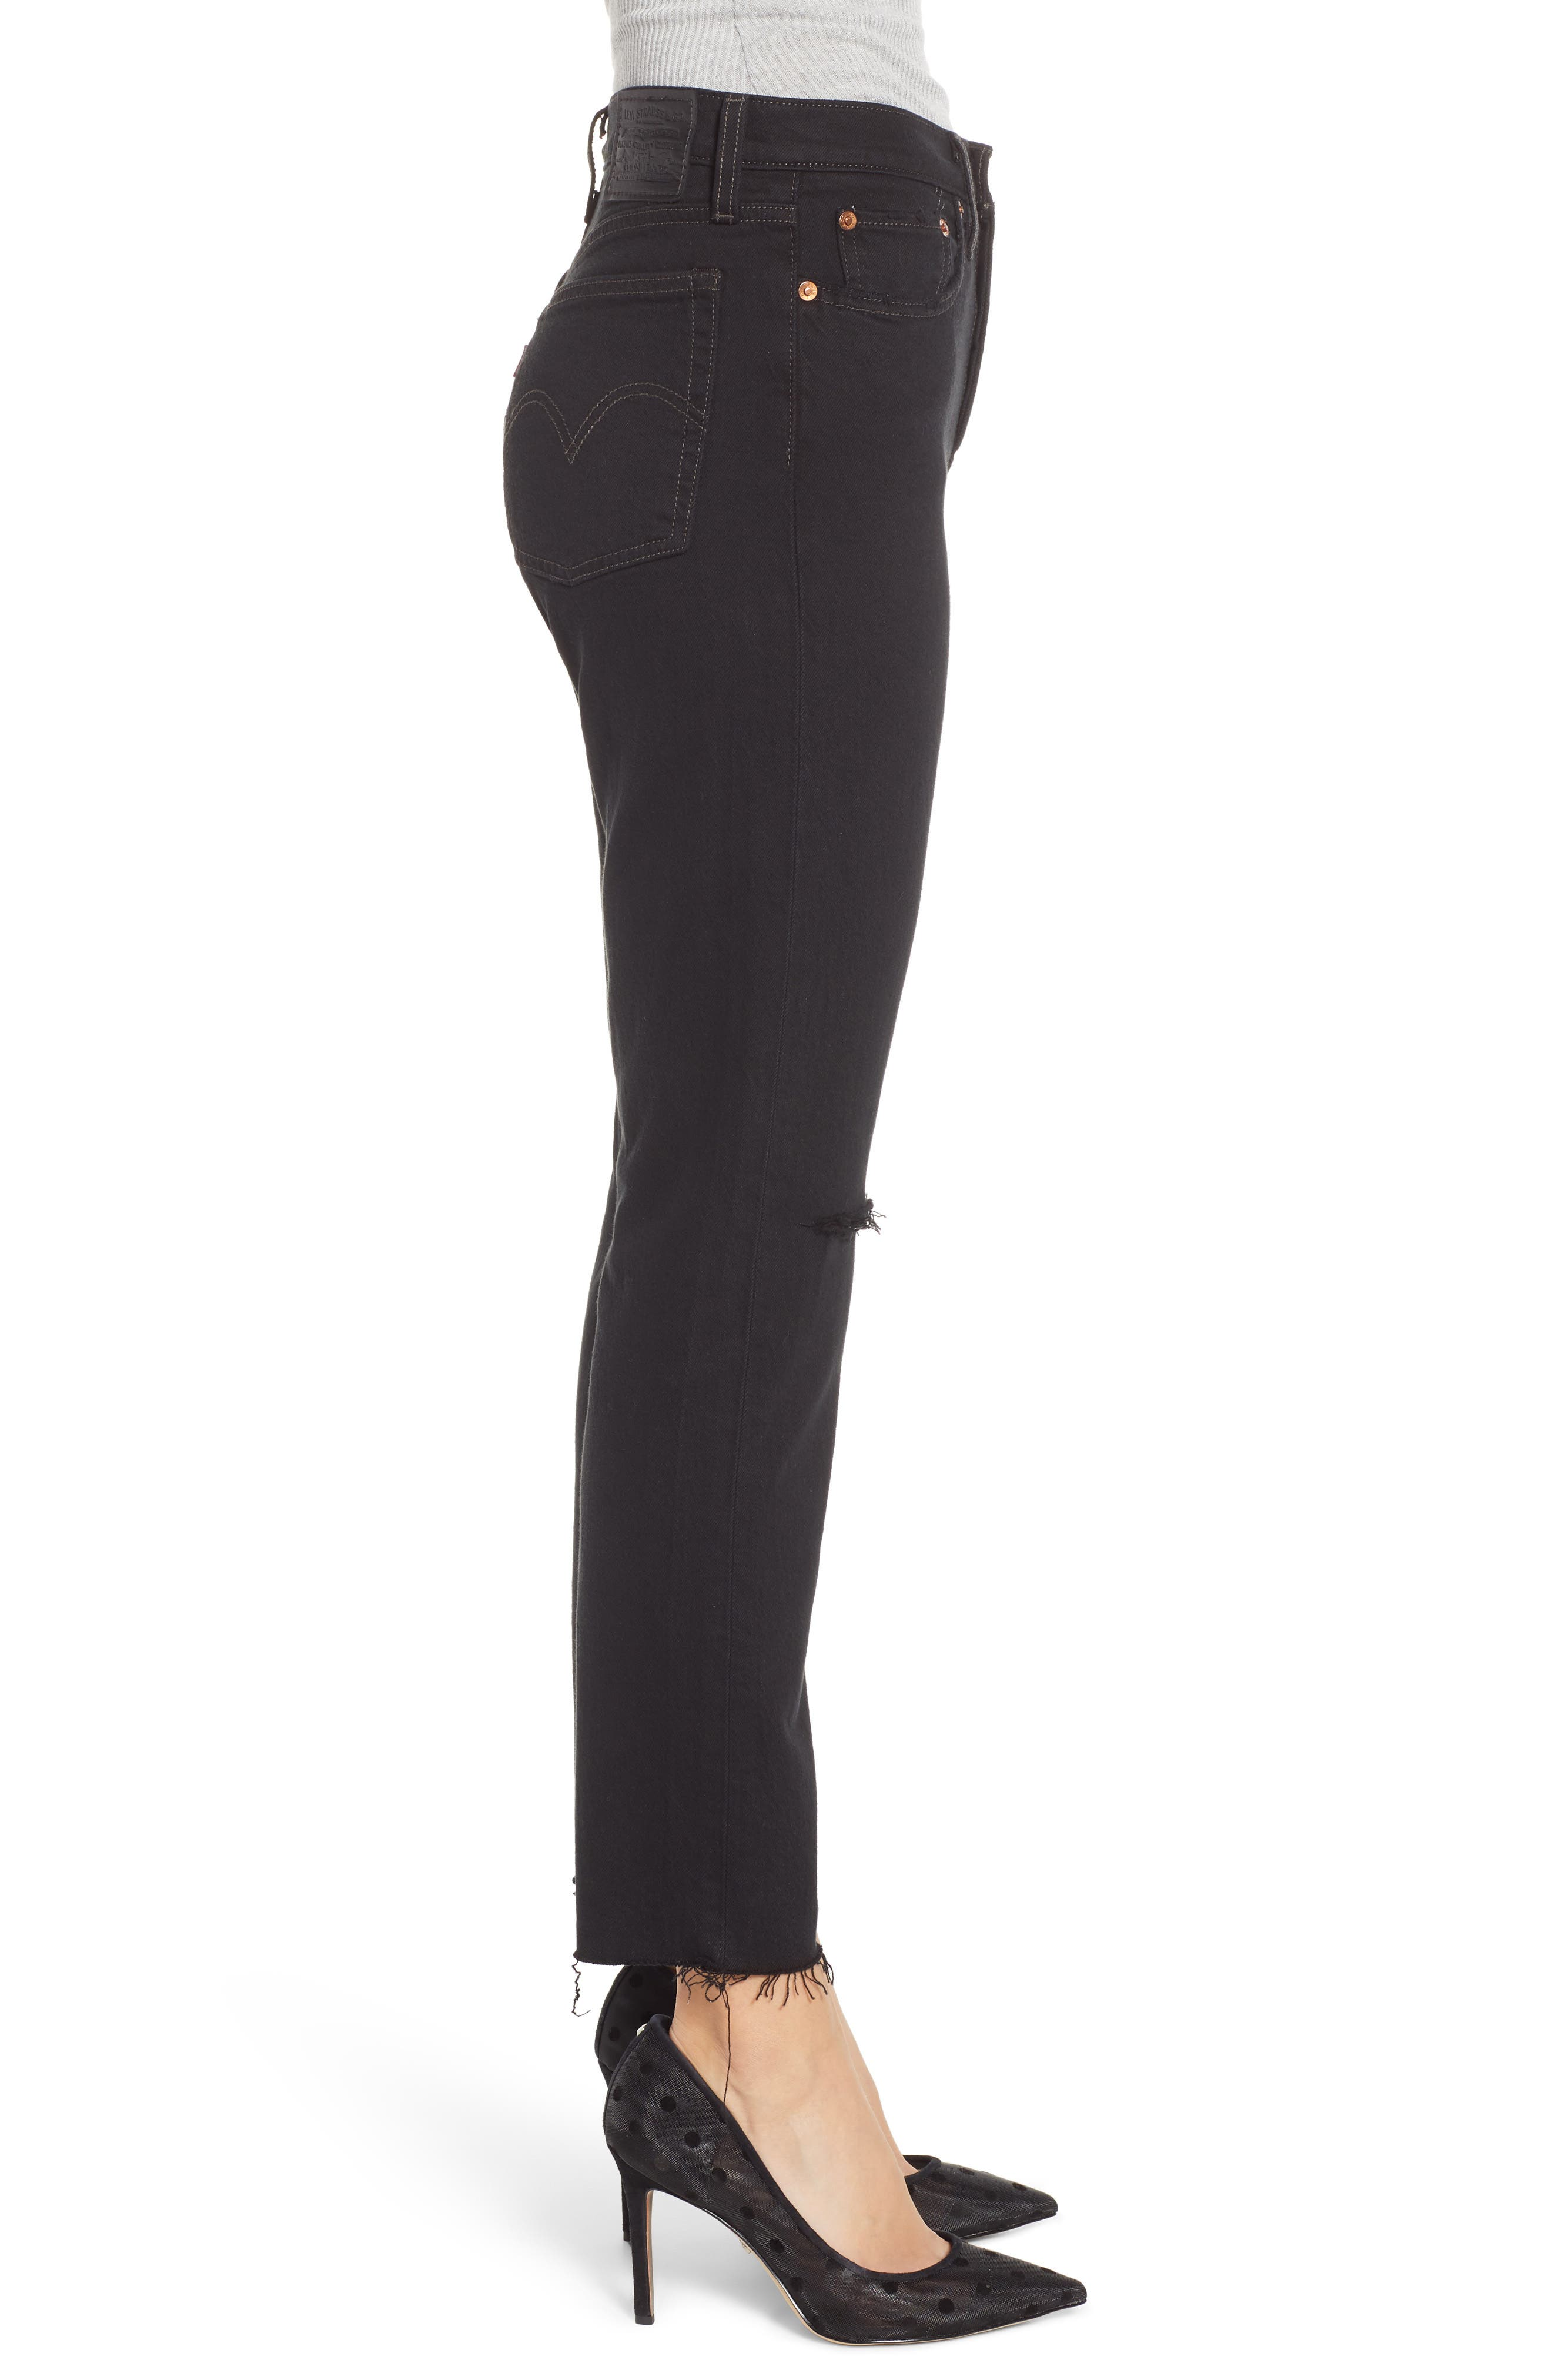 LEVI'S<SUP>®</SUP>, Wedgie Icon Fit High Waist Ripped Skinny Jeans, Alternate thumbnail 4, color, BLACK DESERT